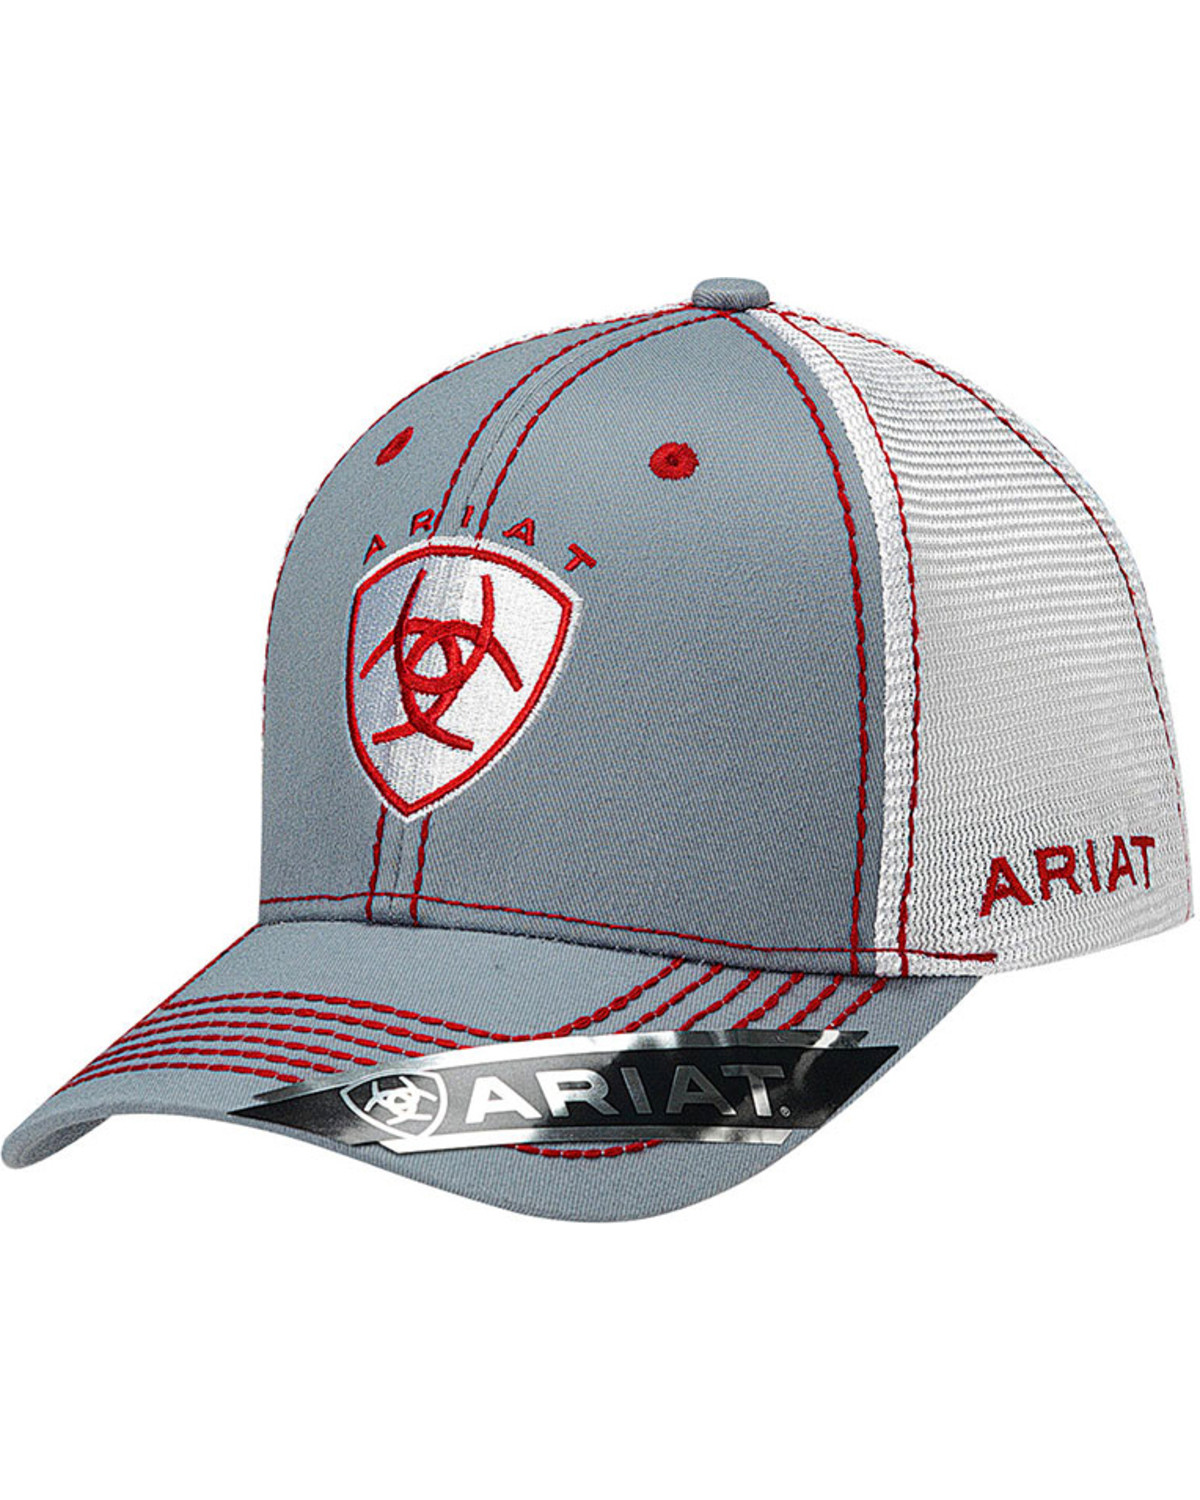 Ariat Mens Silver with Red Accents Baseball Cap  25ff1f96764b